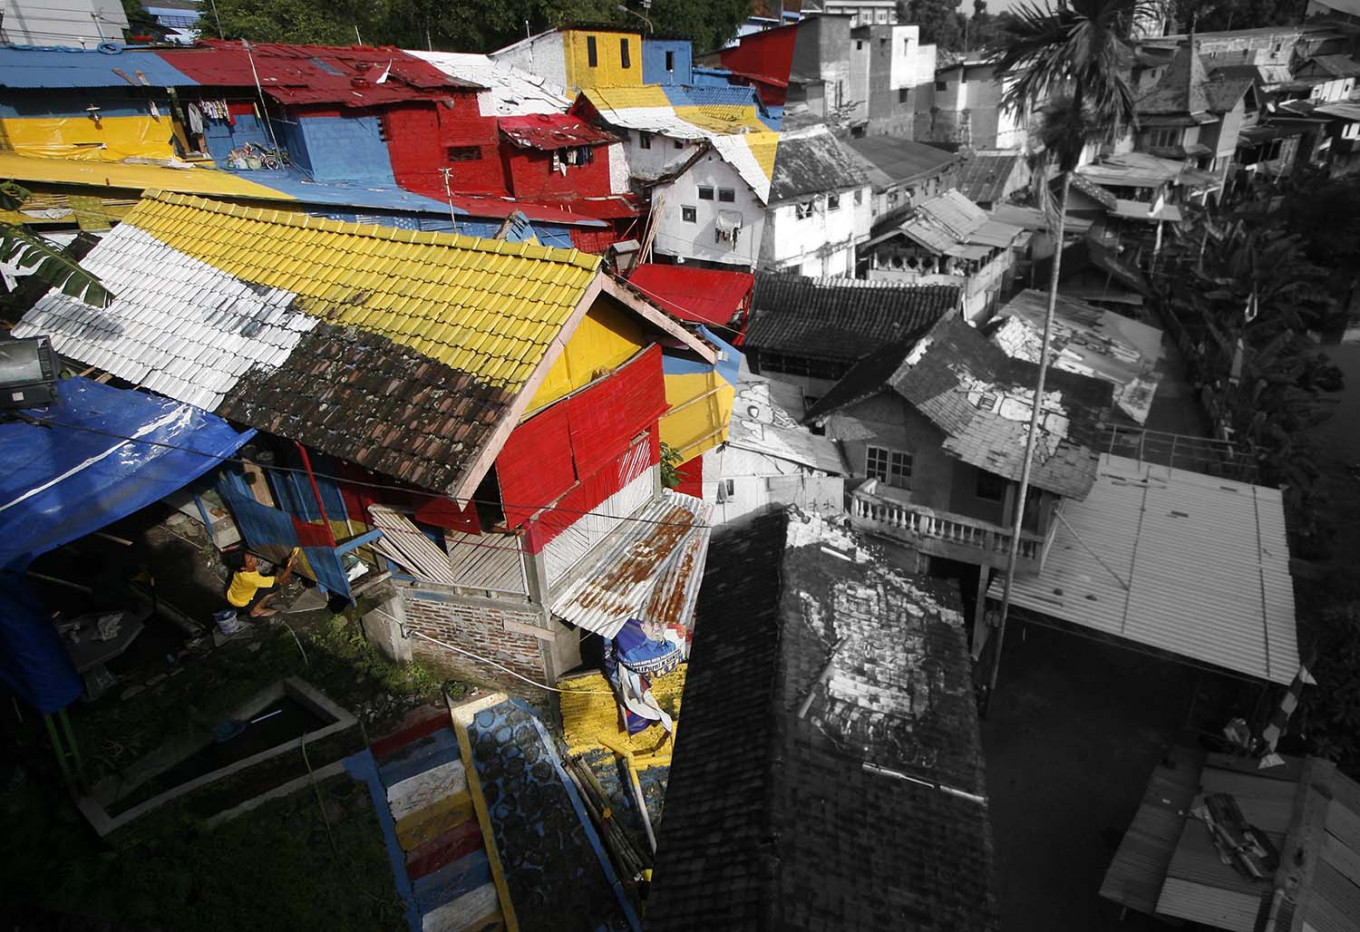 (Left) A resident paints his house in 2015. (Right) In 2019, the colors on the roofs have started to fade. JP/Boy T Harjanto